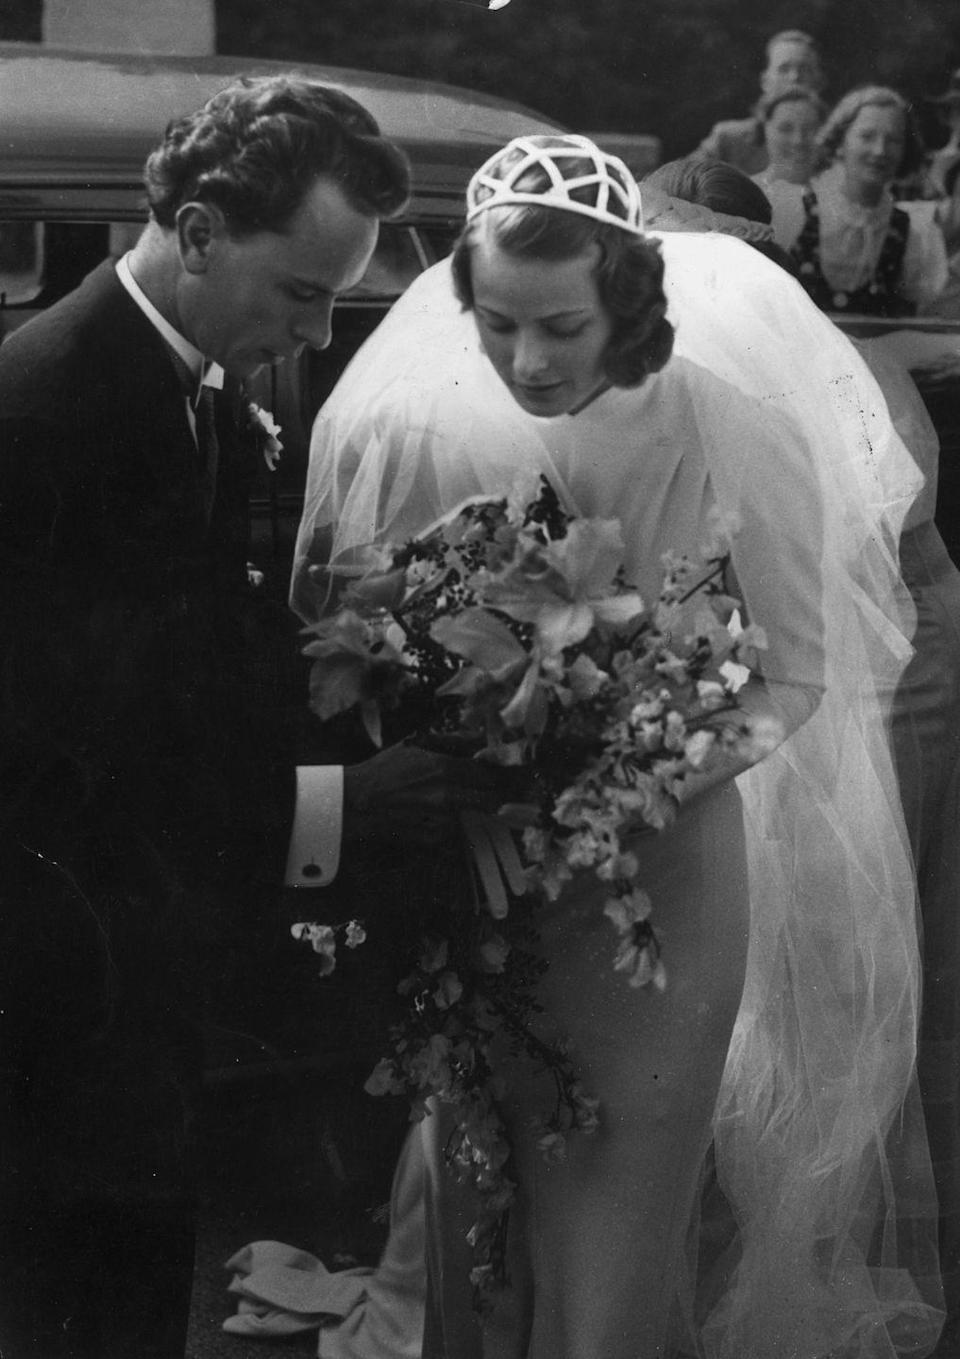 <p>Swedish-born actor Ingrid Bergman married her first husband, then a dentist and later a neurosurgeon Dr. Petter Lindstrom, who was eight years her senior, on July 10, 1937. In 1950, they divorced after Bergman left him for an affair with Roberto Rossellini, the director of a movie she acted in, <em>Stromboli</em>. She married Rossellini and later remarried another.</p>